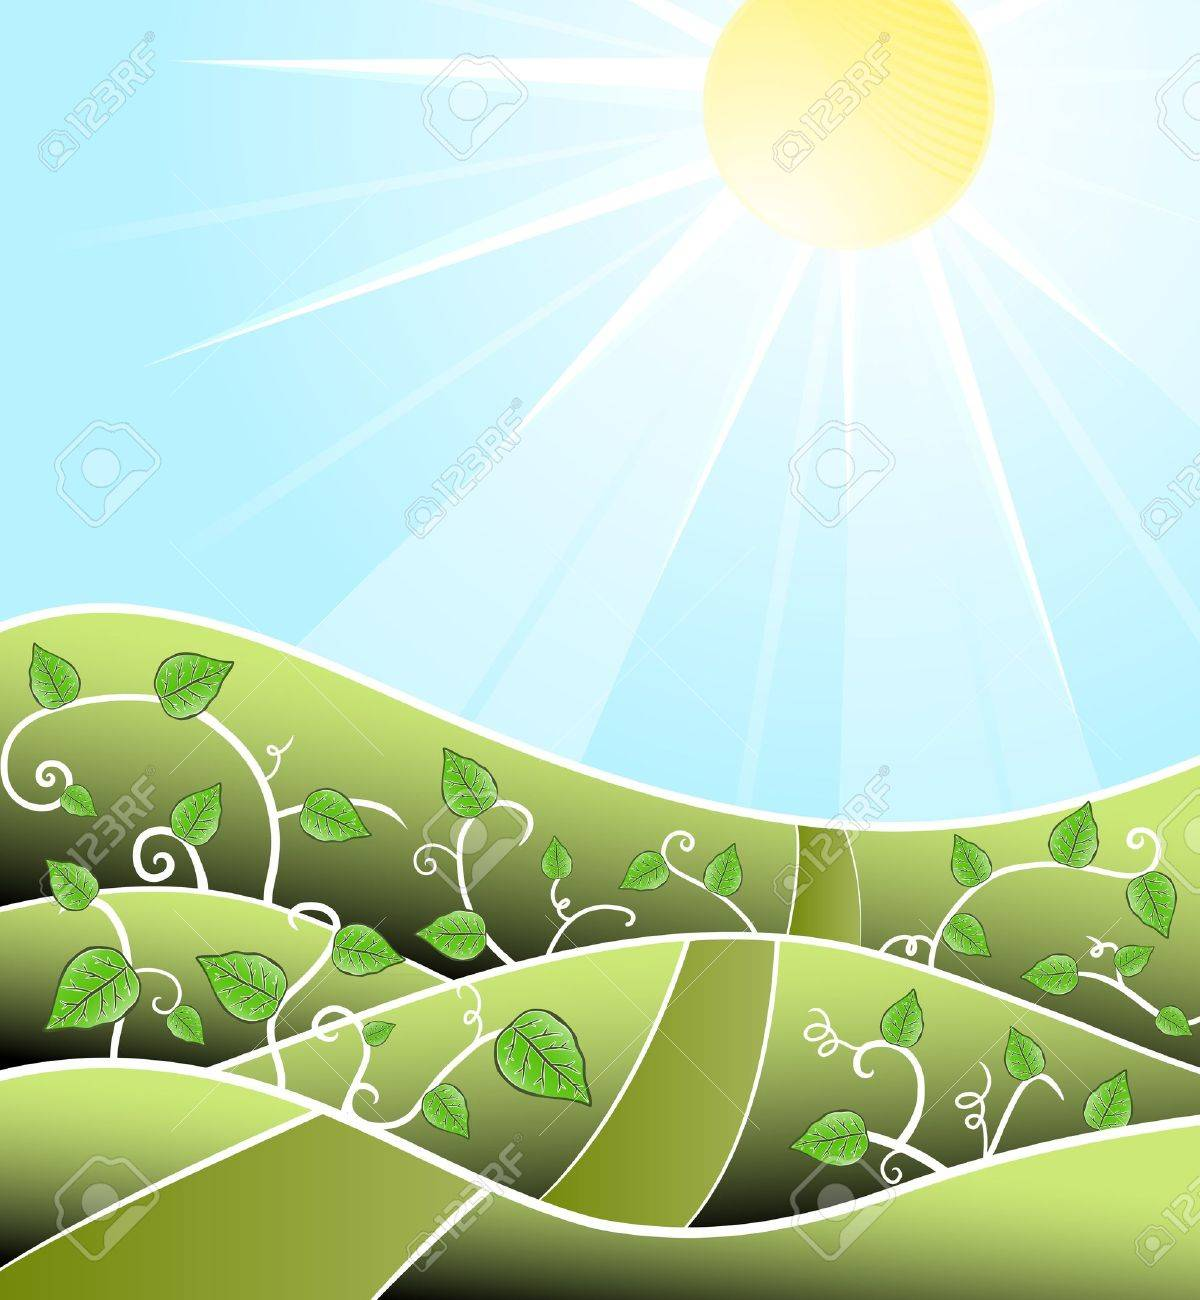 illustration of a stylized sunny day scenery with floral swirly vines and road leading towards the horizon. - 6953221